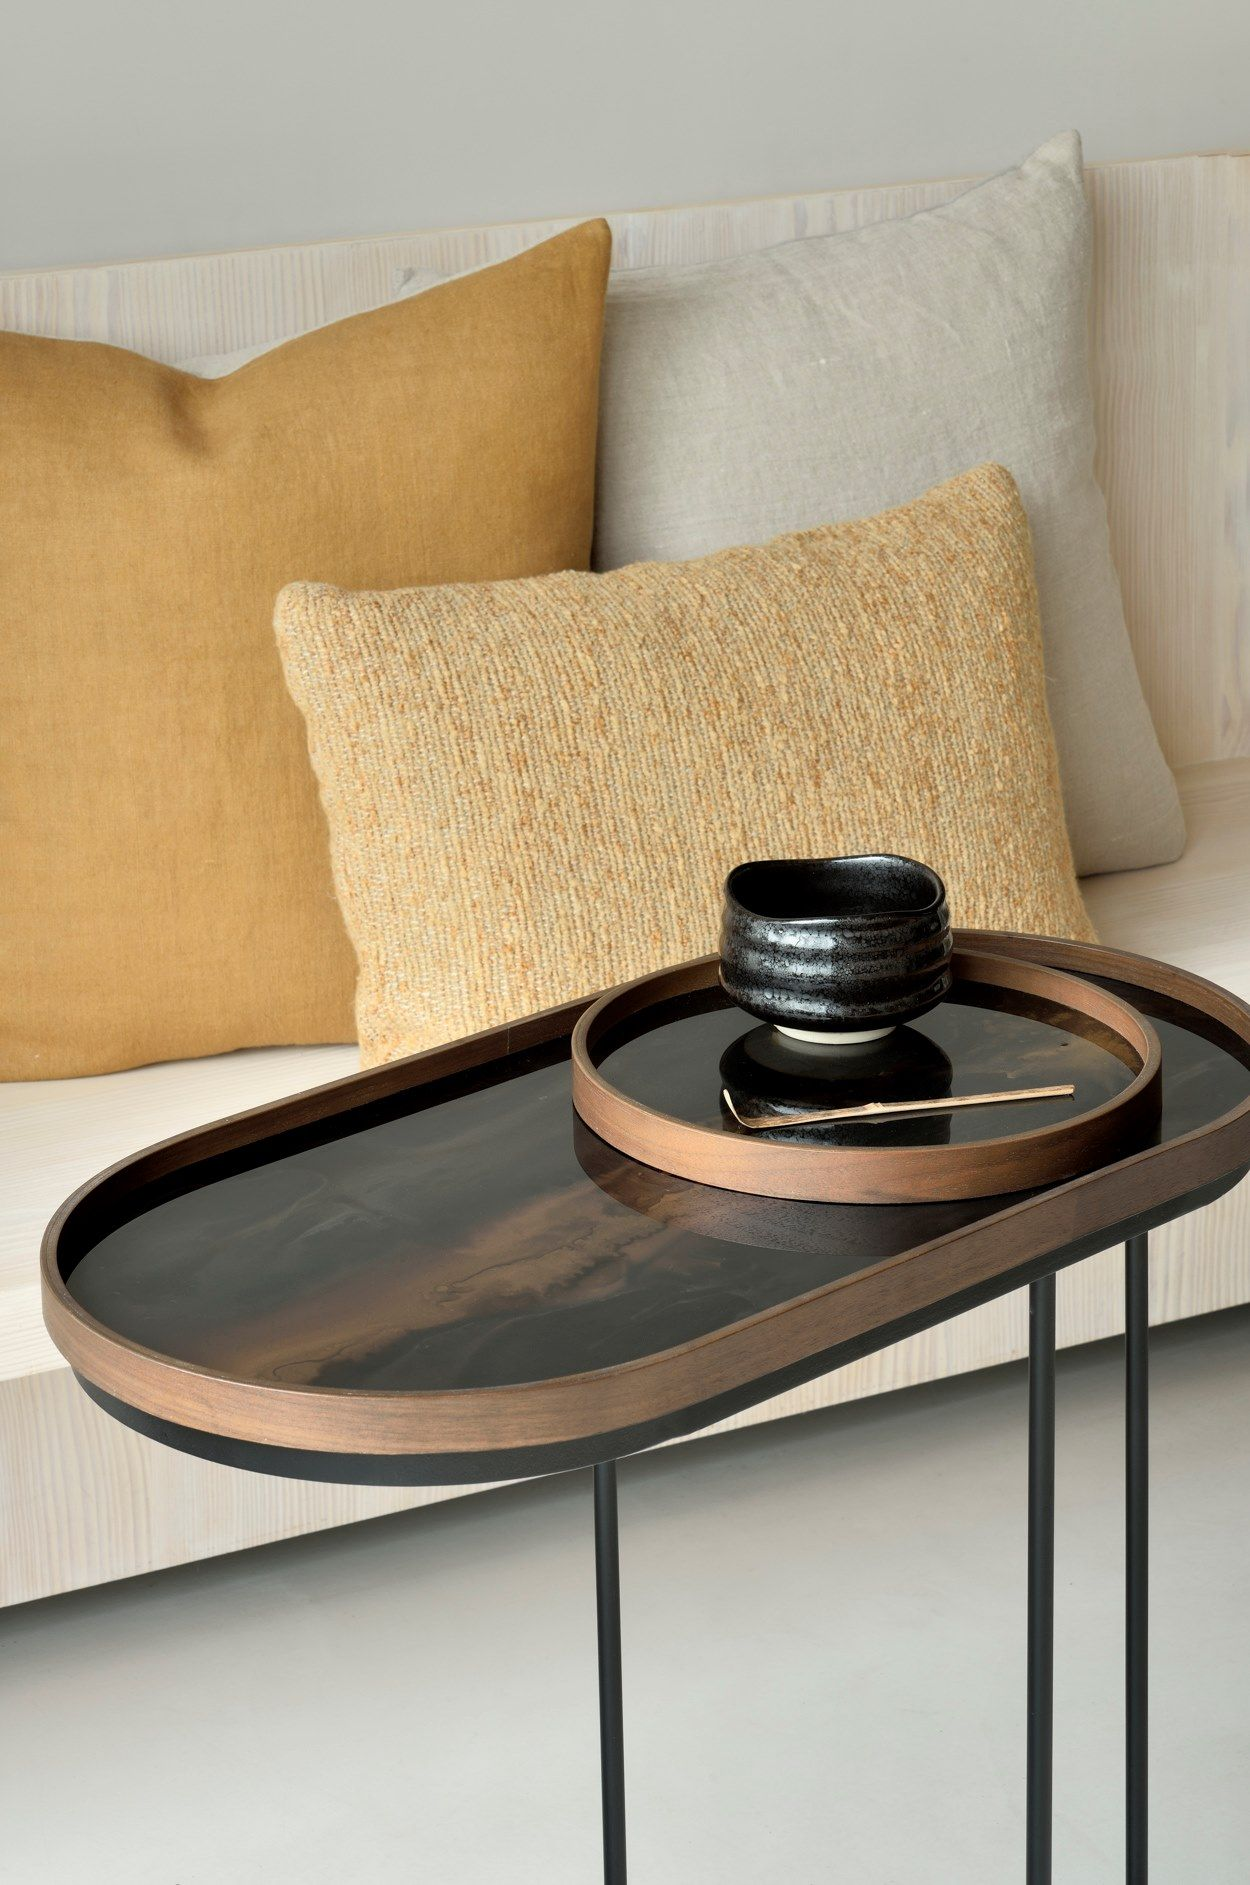 Oval Wood And Glass Tray Bronze Organic Oblong By Ethnicraft Design Dawn Sweitzer In 2021 Ethnicraft Bronze Oblong [ 1885 x 1250 Pixel ]